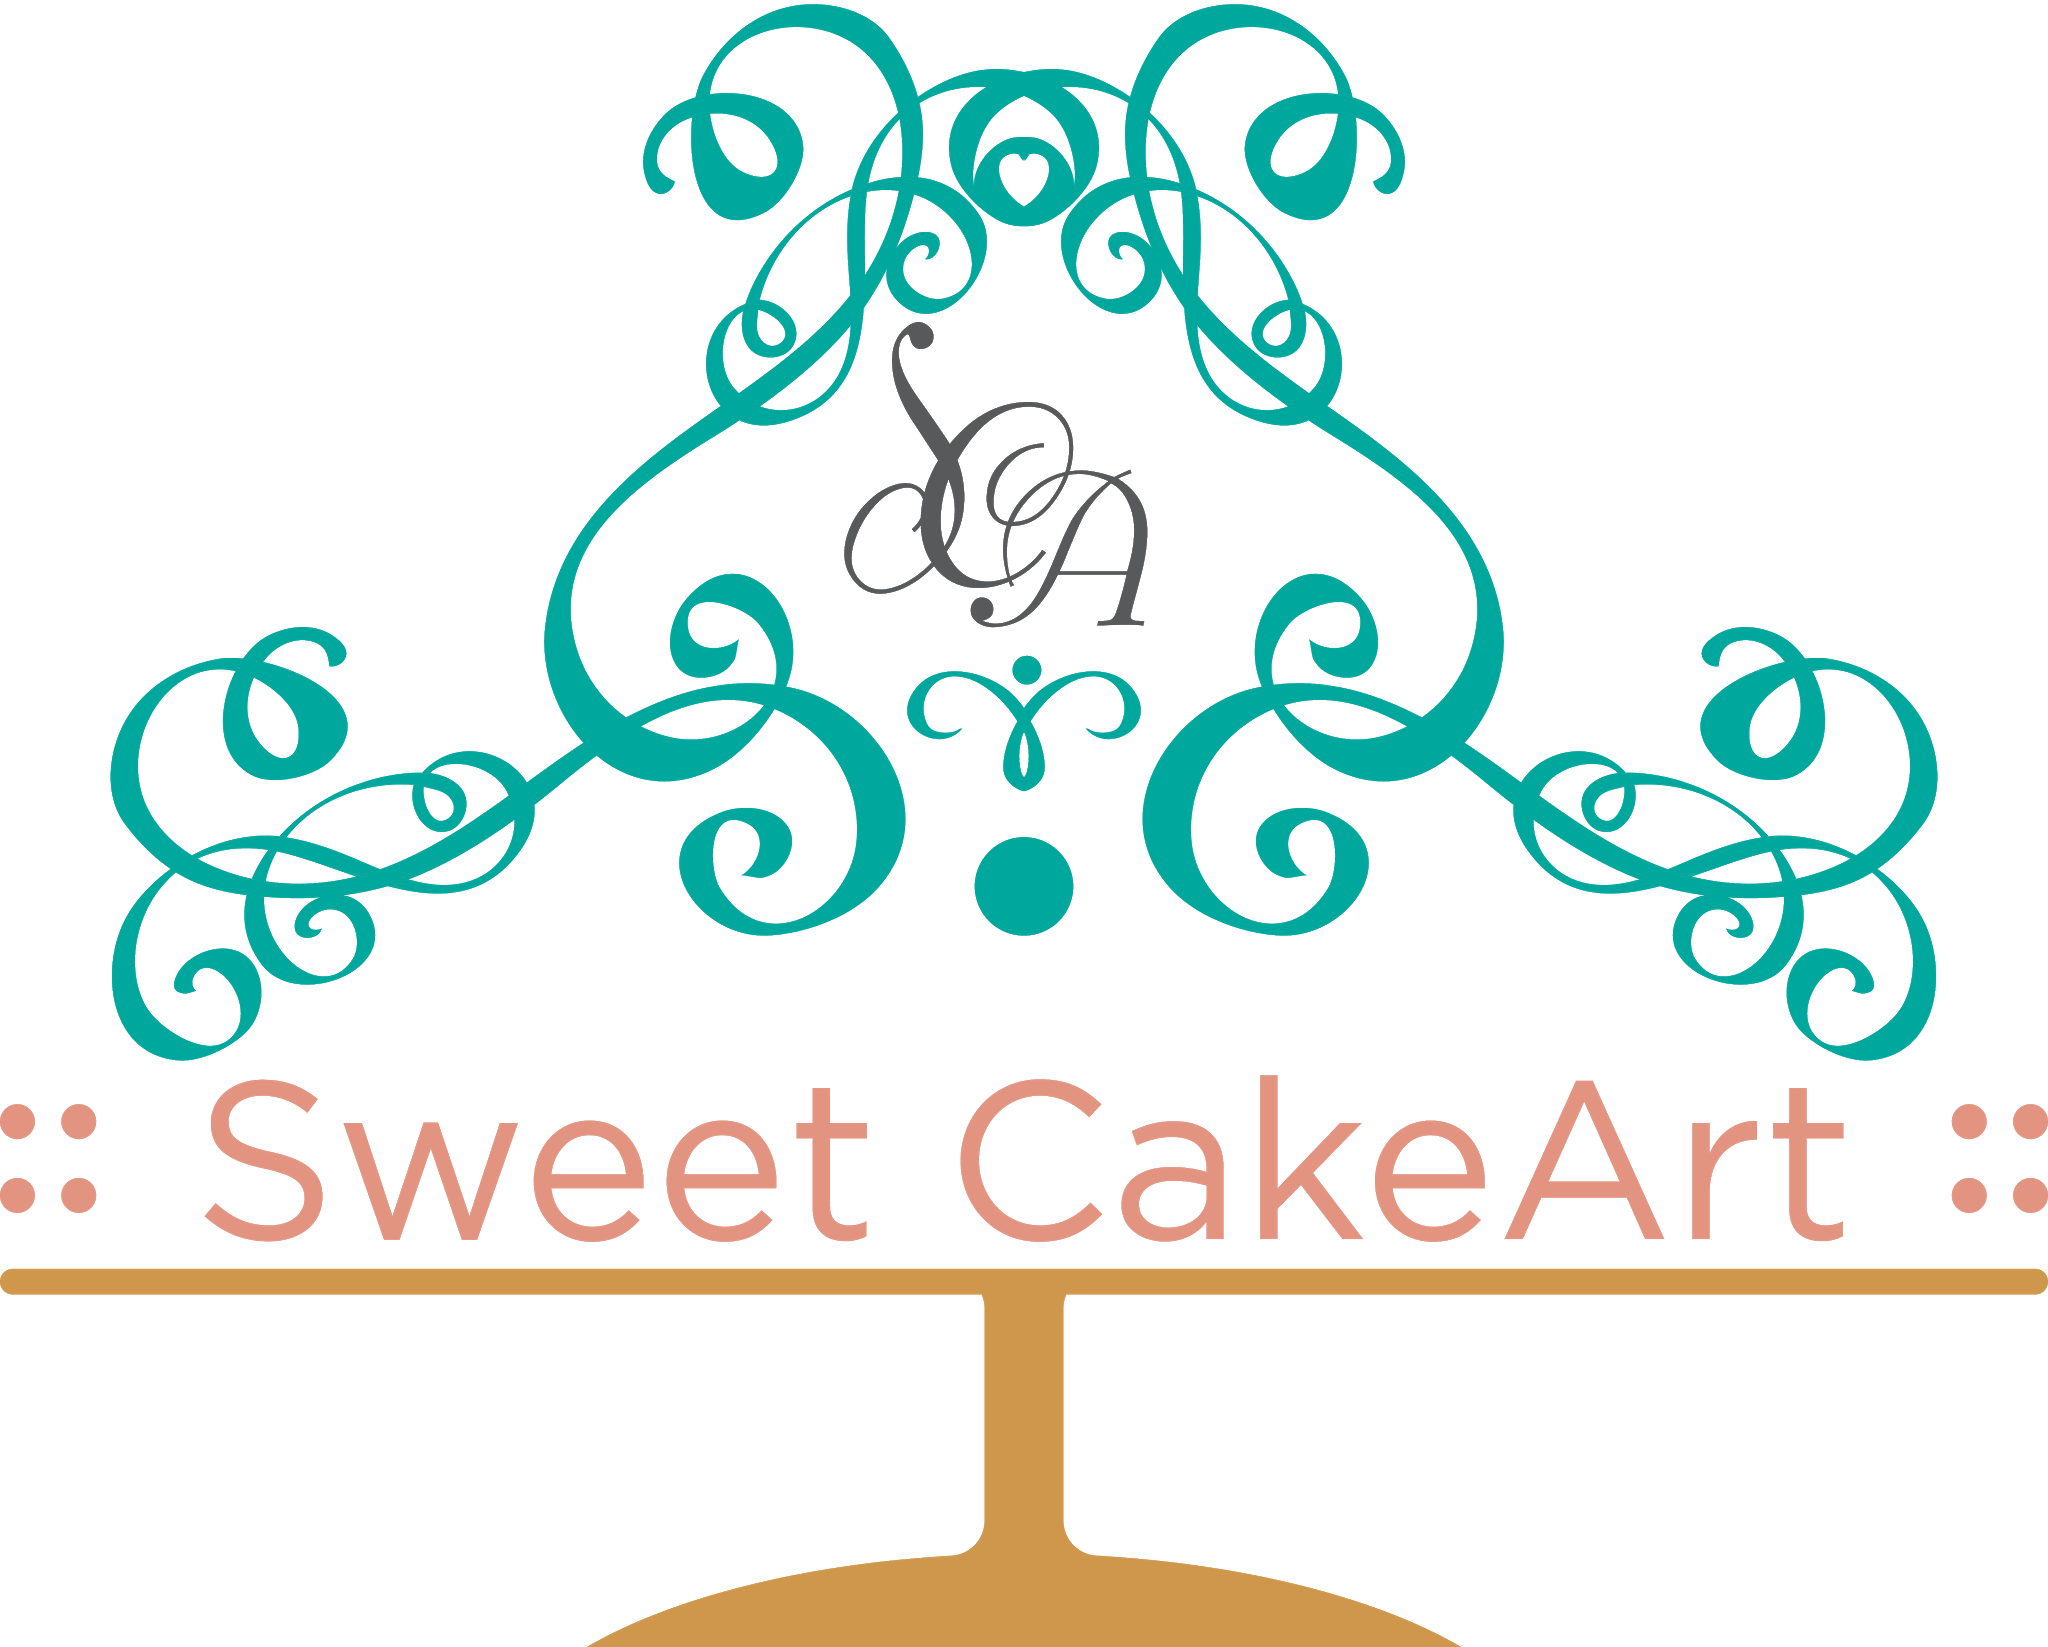 Sweet Cake Art Logo